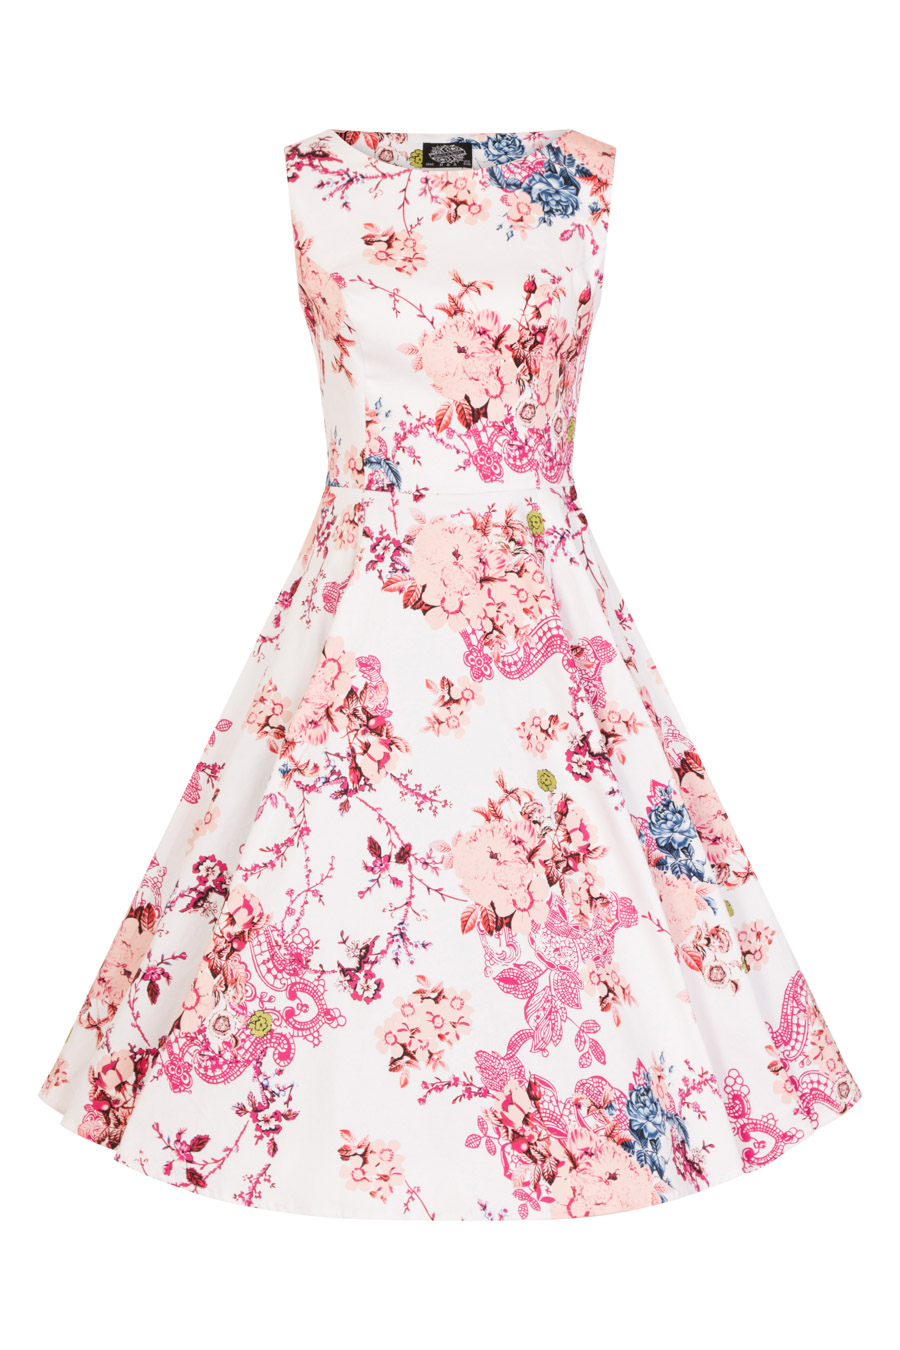 602aa2bf6b01 Heavenly Audrey Swing Dress in white - Hearts & Roses London